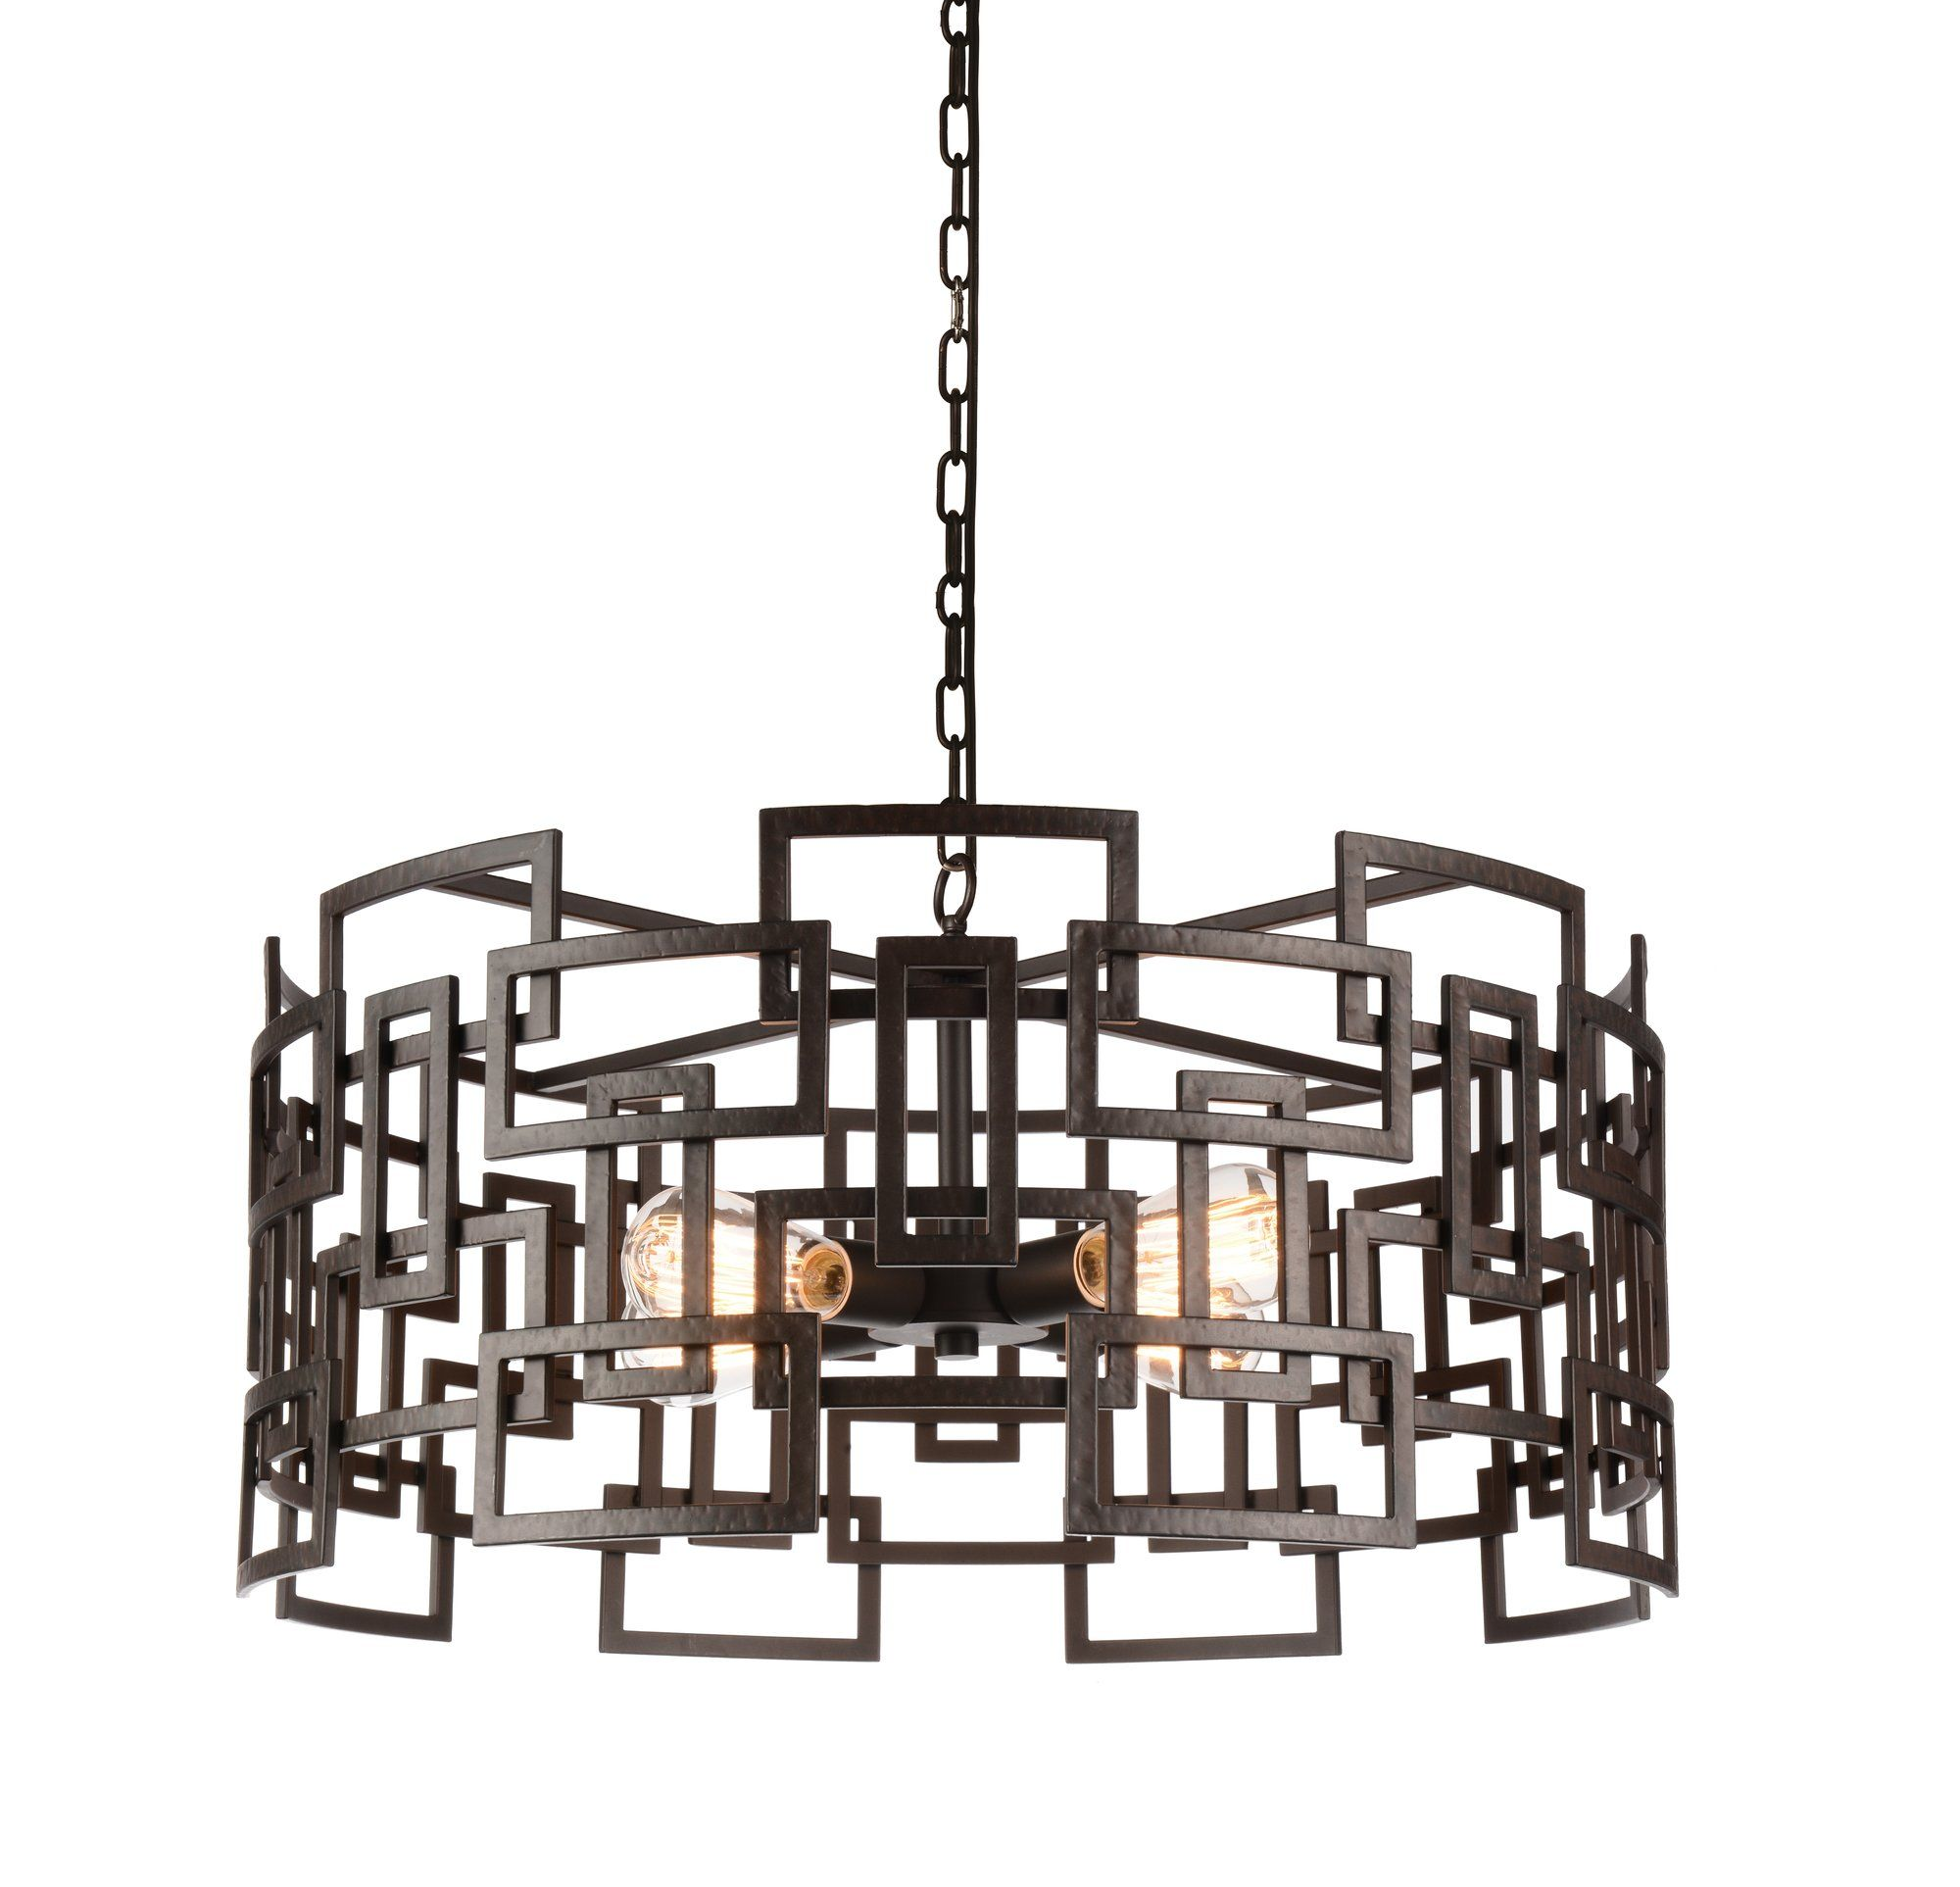 Litani 4 Light Geometric Pendant